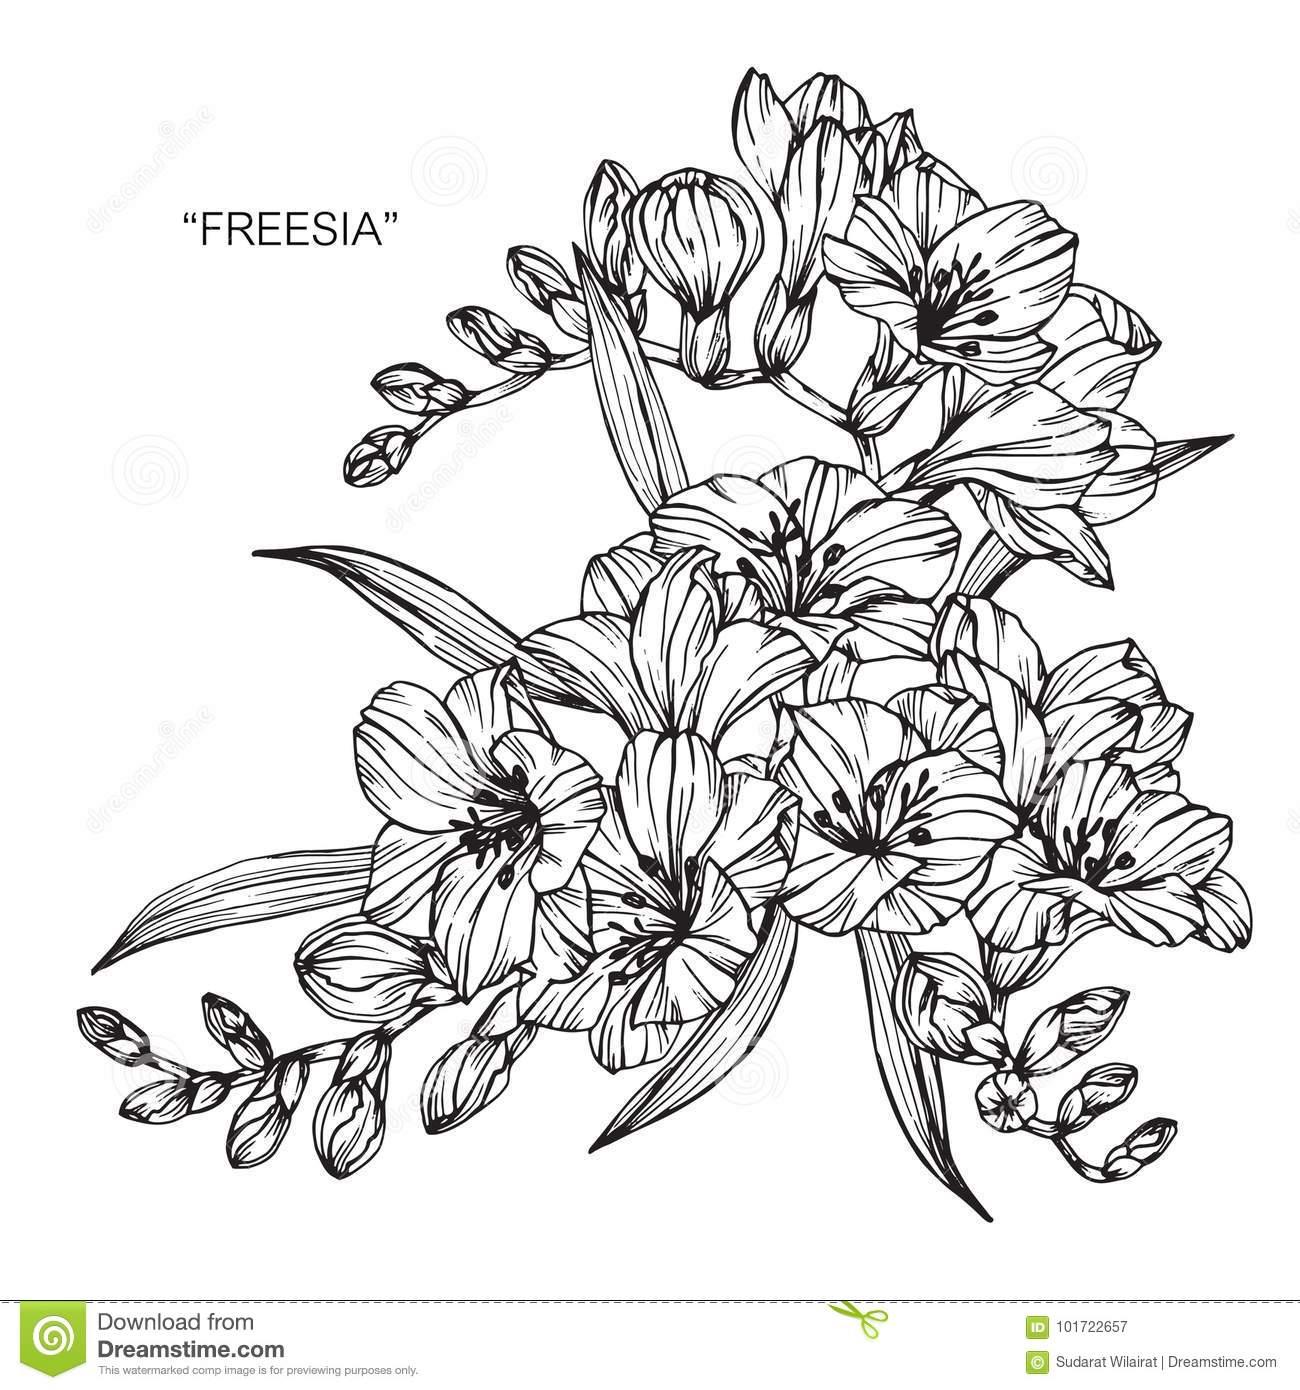 Bouquet Of Freesia Flowers Drawing And Sketch Stock Illustration